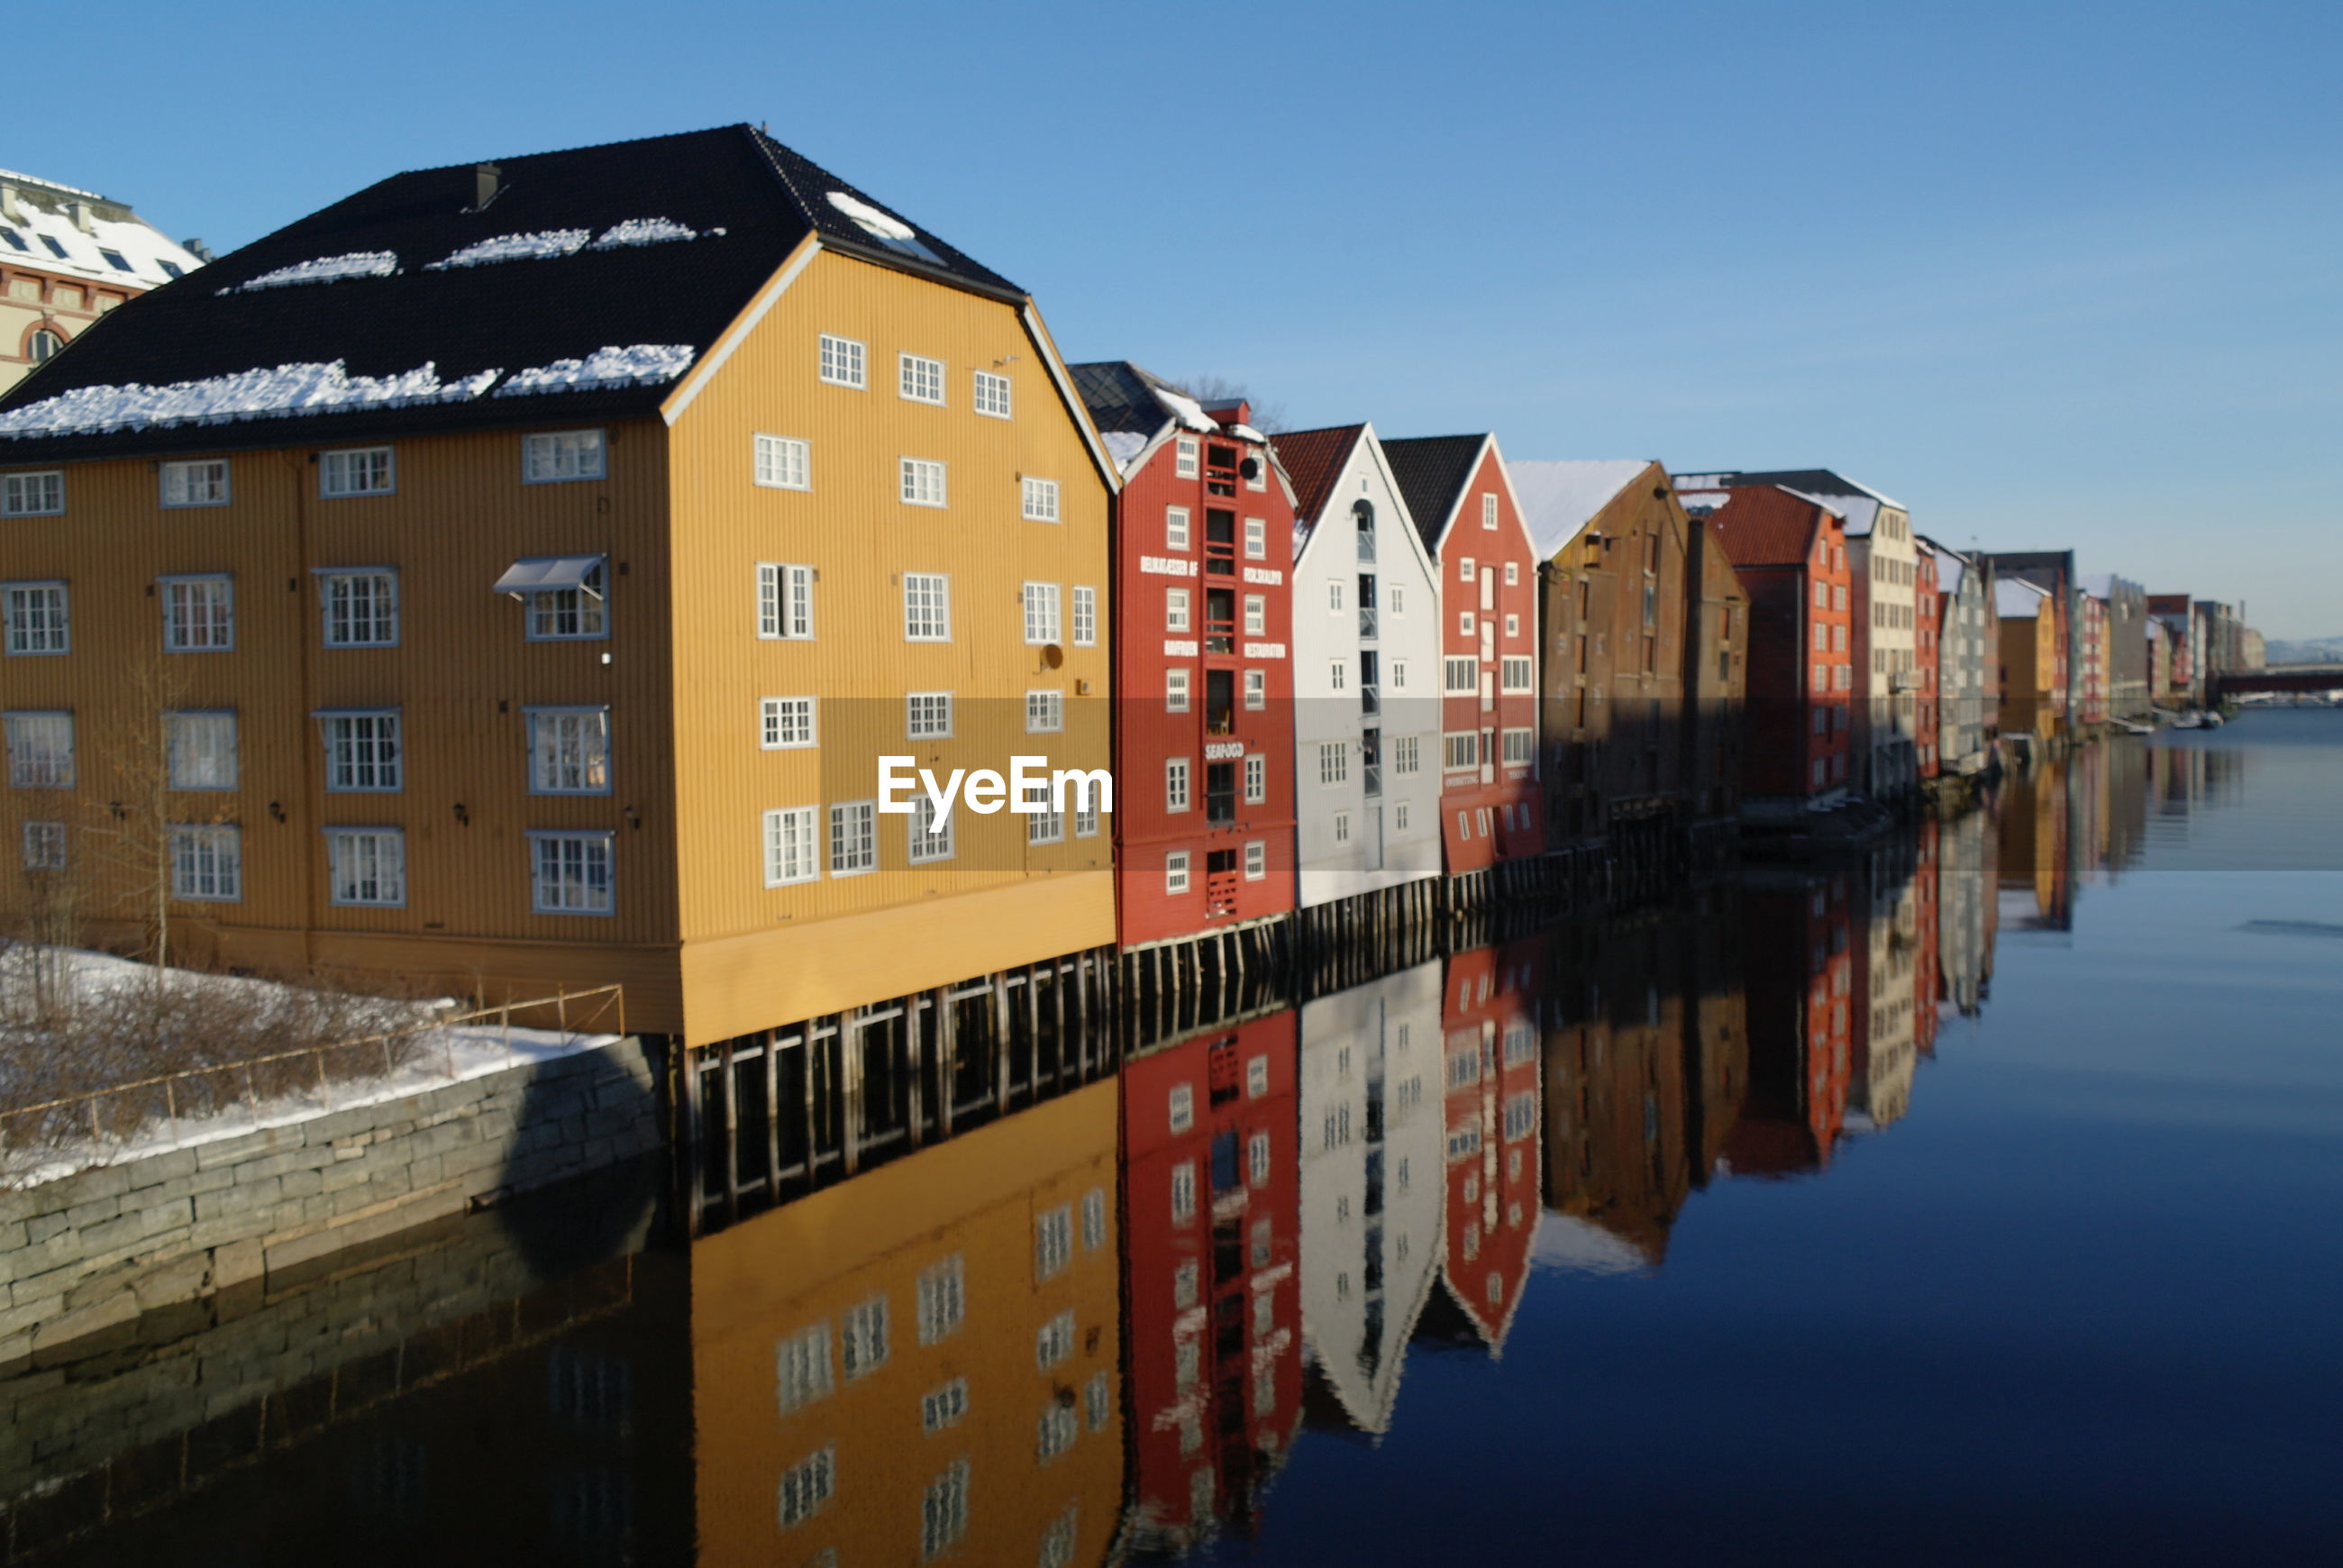 Reflection of buildings in canal against clear sky